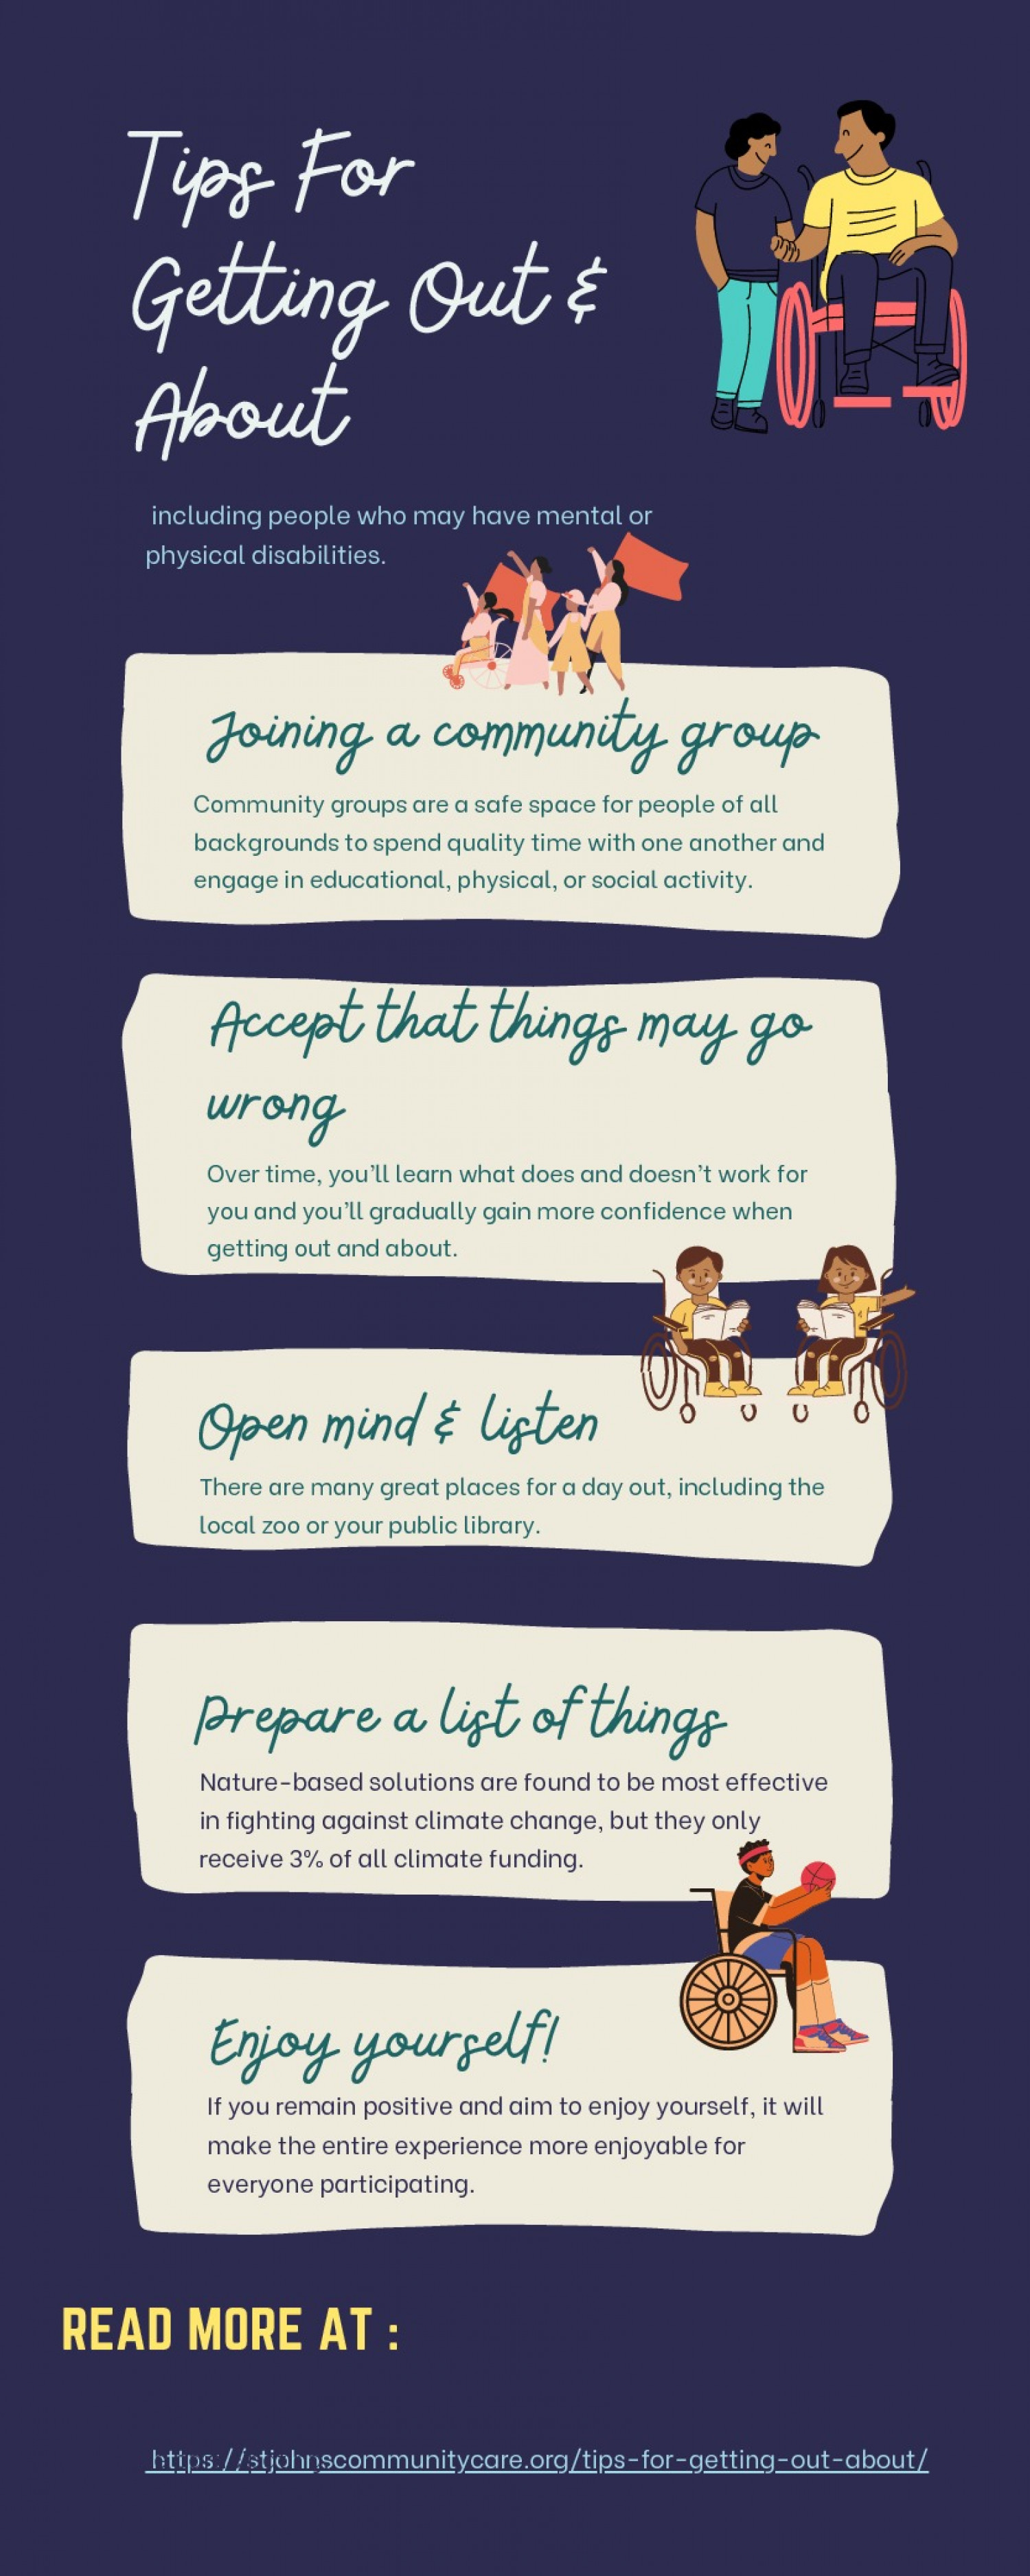 Tips For Getting Out and About Infographic